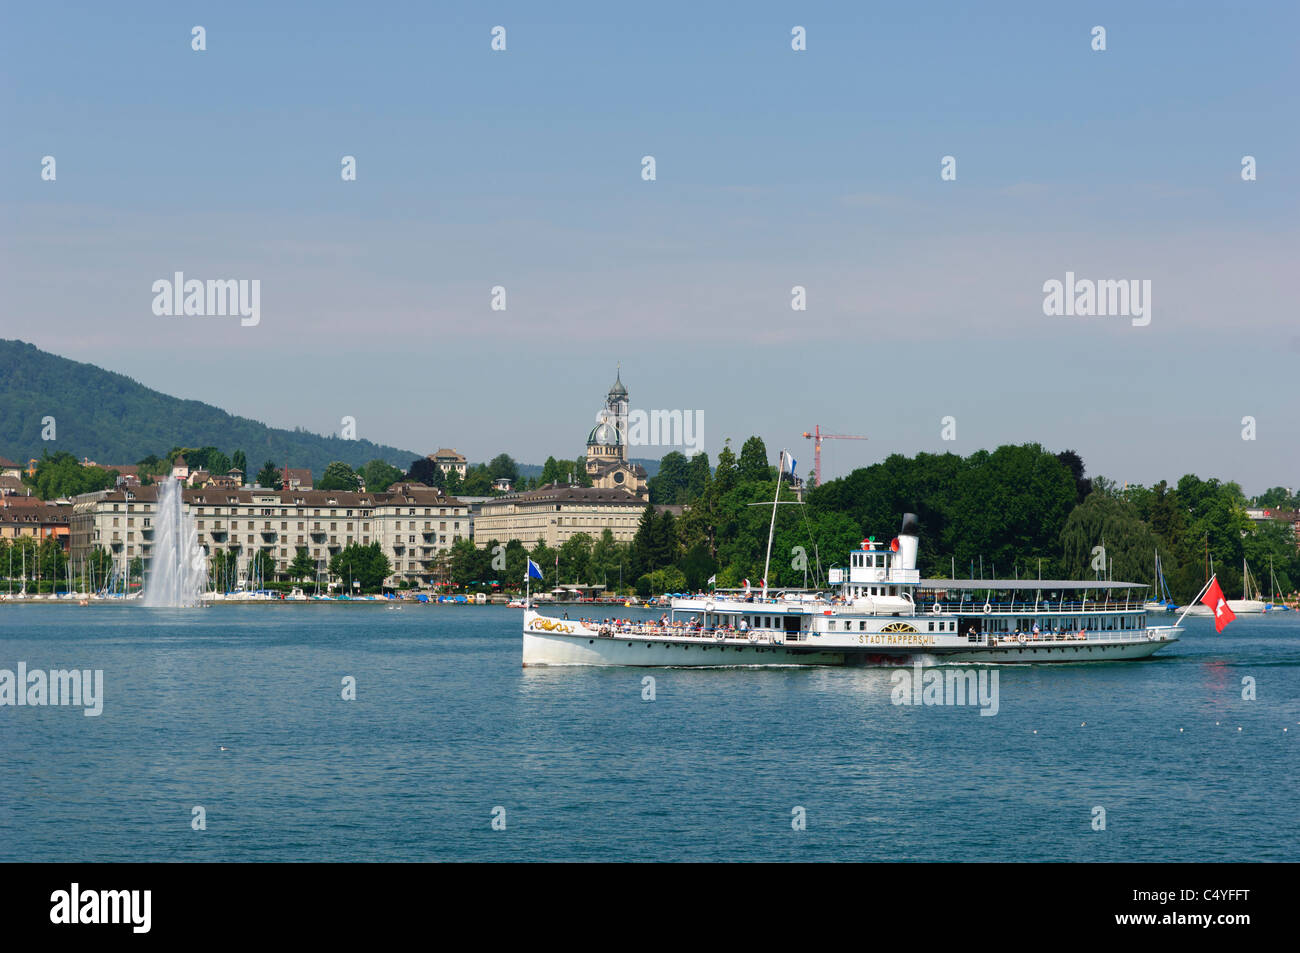 The paddlesteamer Stadt Rapperswil and the jet d'eau on Zúrich  Lake. Switzerland.. - Stock Image